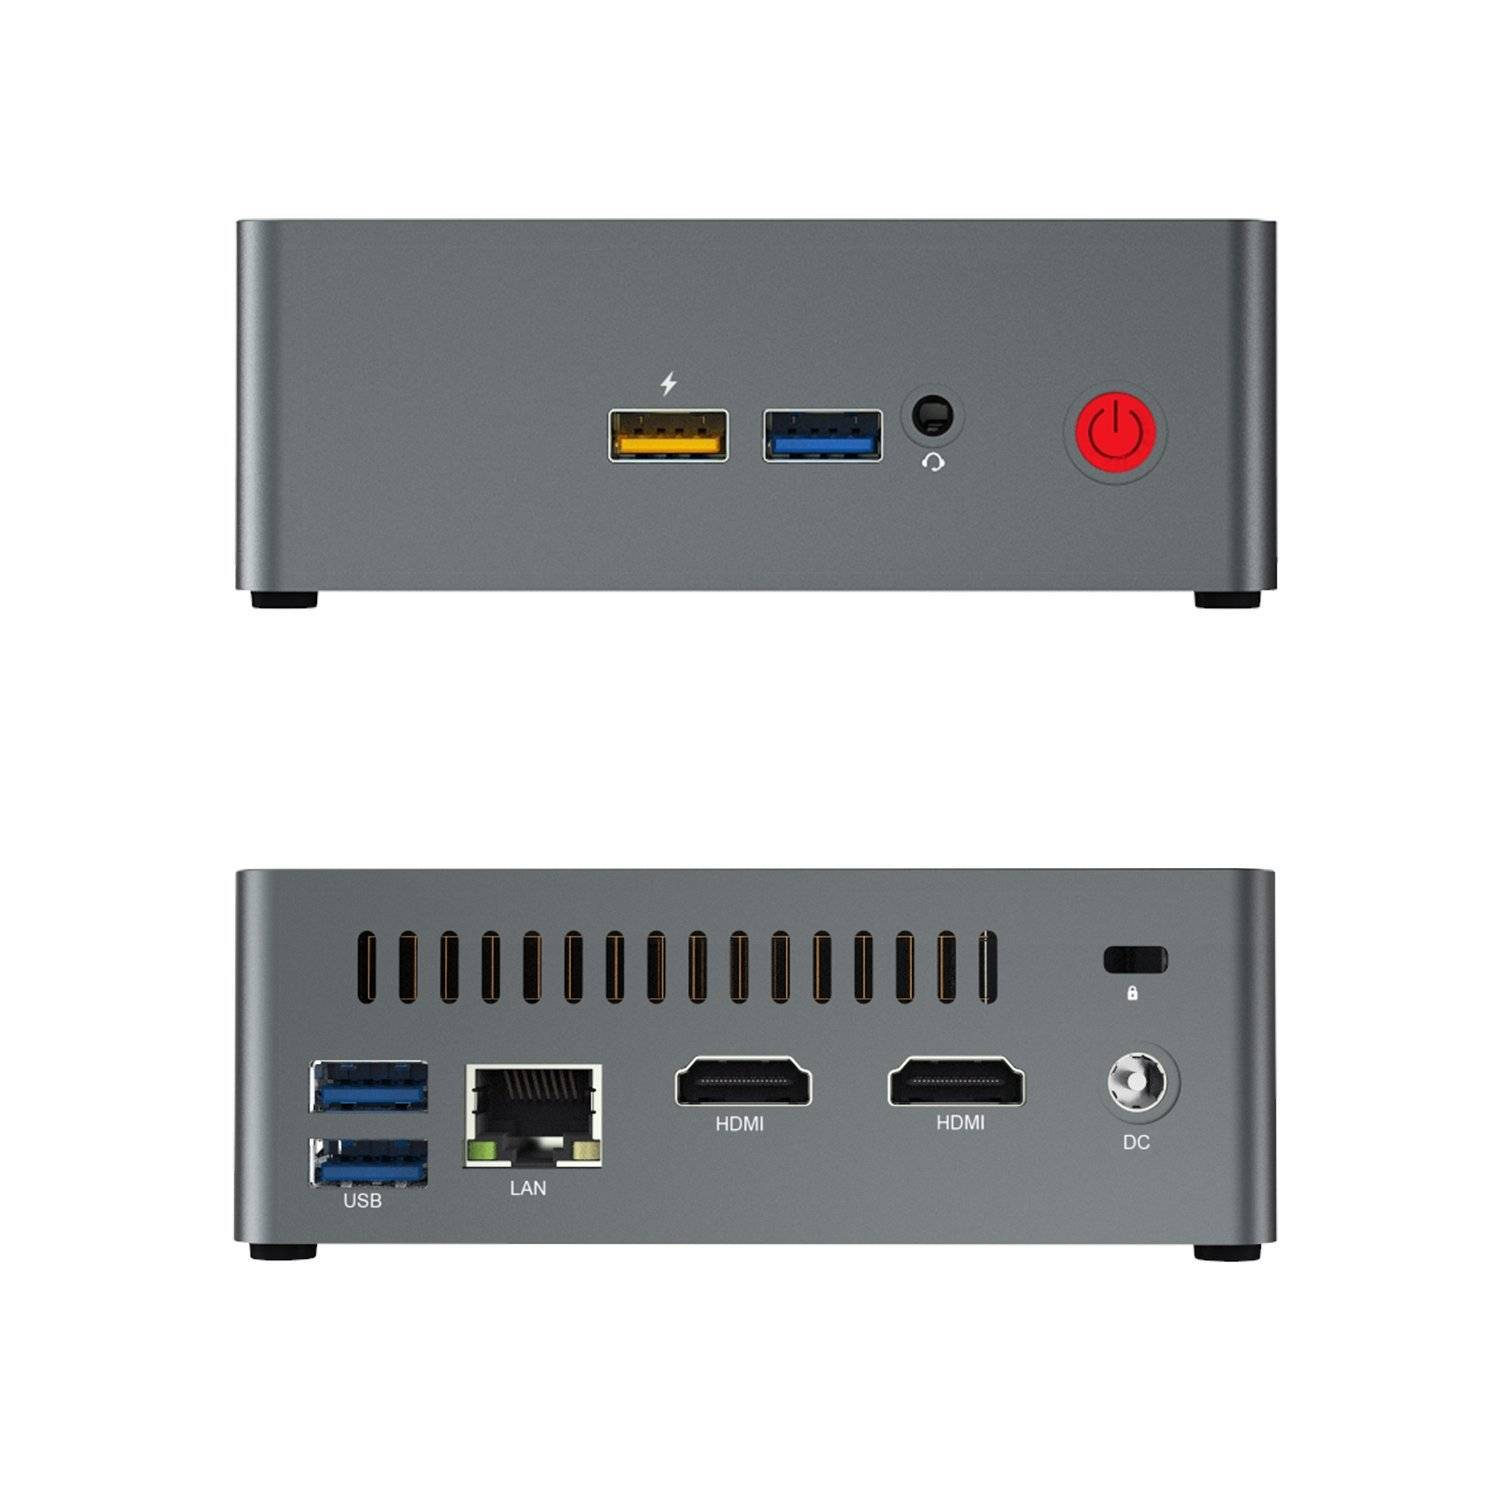 Beelink J45 Windows 10 Mini Computer for Home or Office - Front View showing 2x USB Type-A 3.0 Ports, 3.5mm Headphone&Microphone Jack and Rear I/O